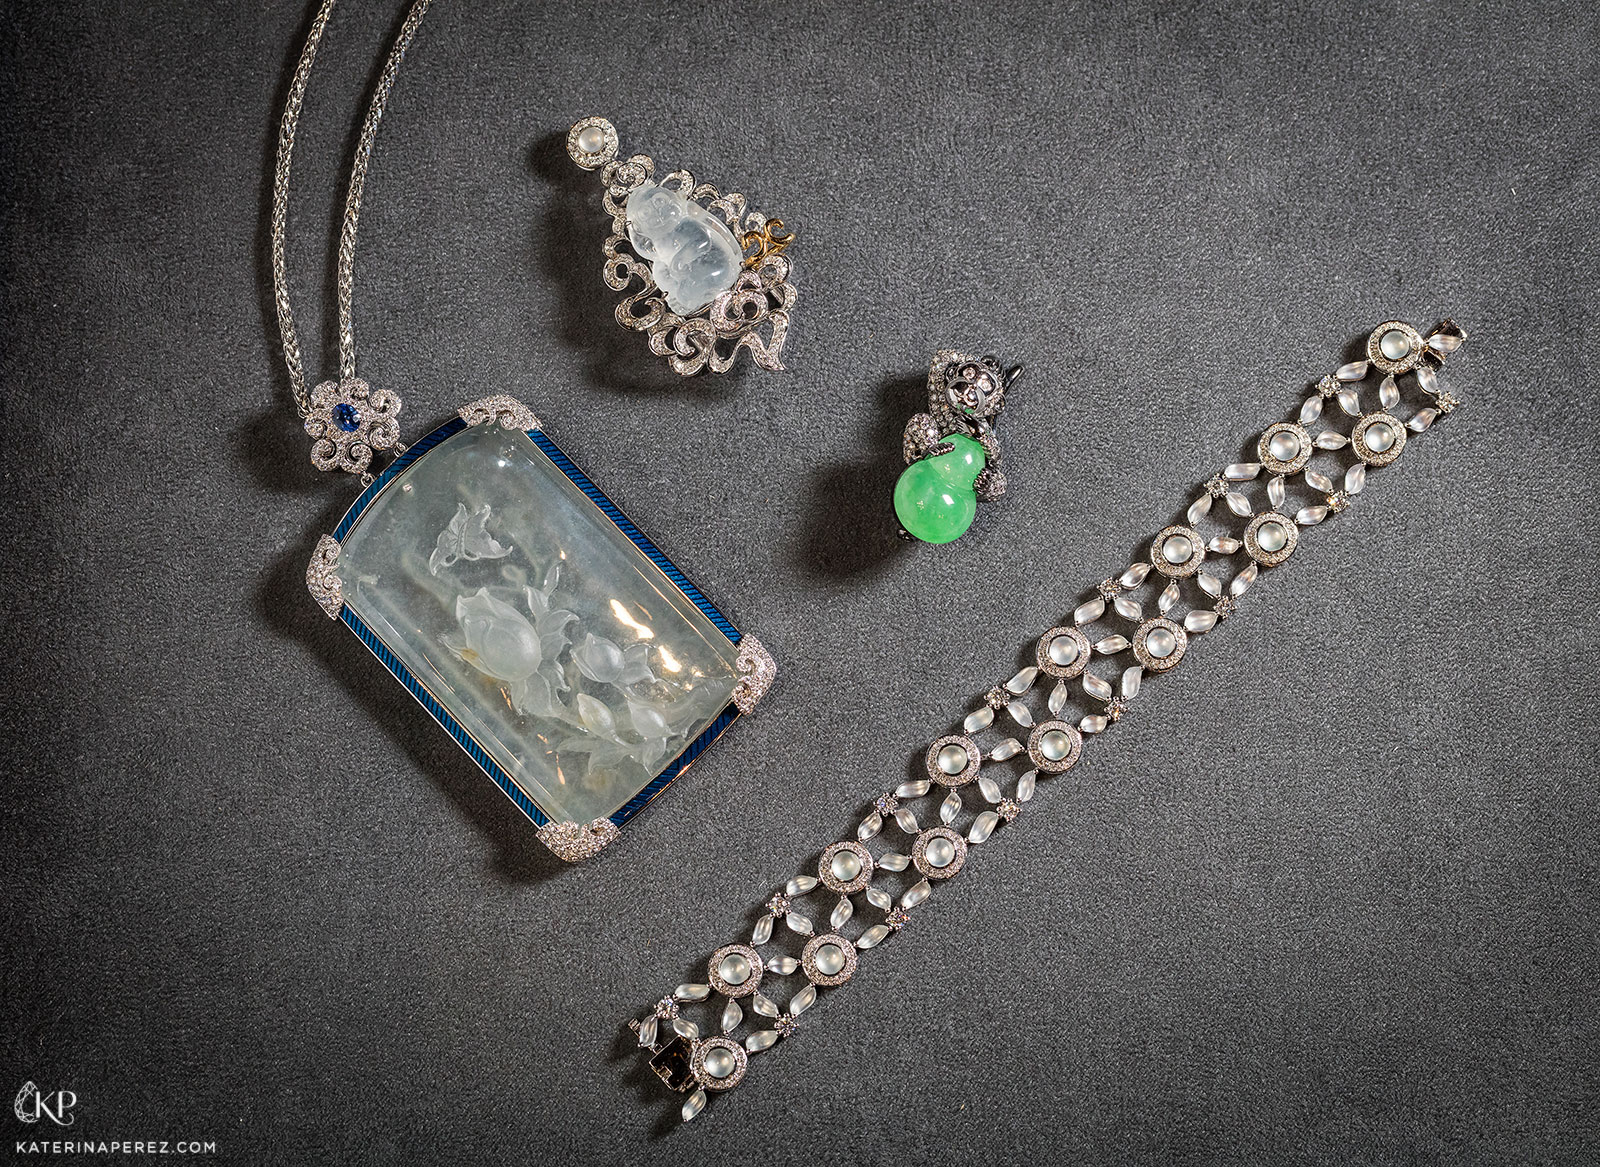 A selection of DAWN jewellery with jadeite, gemstones, diamonds, intaglio icy jadeite and enamel